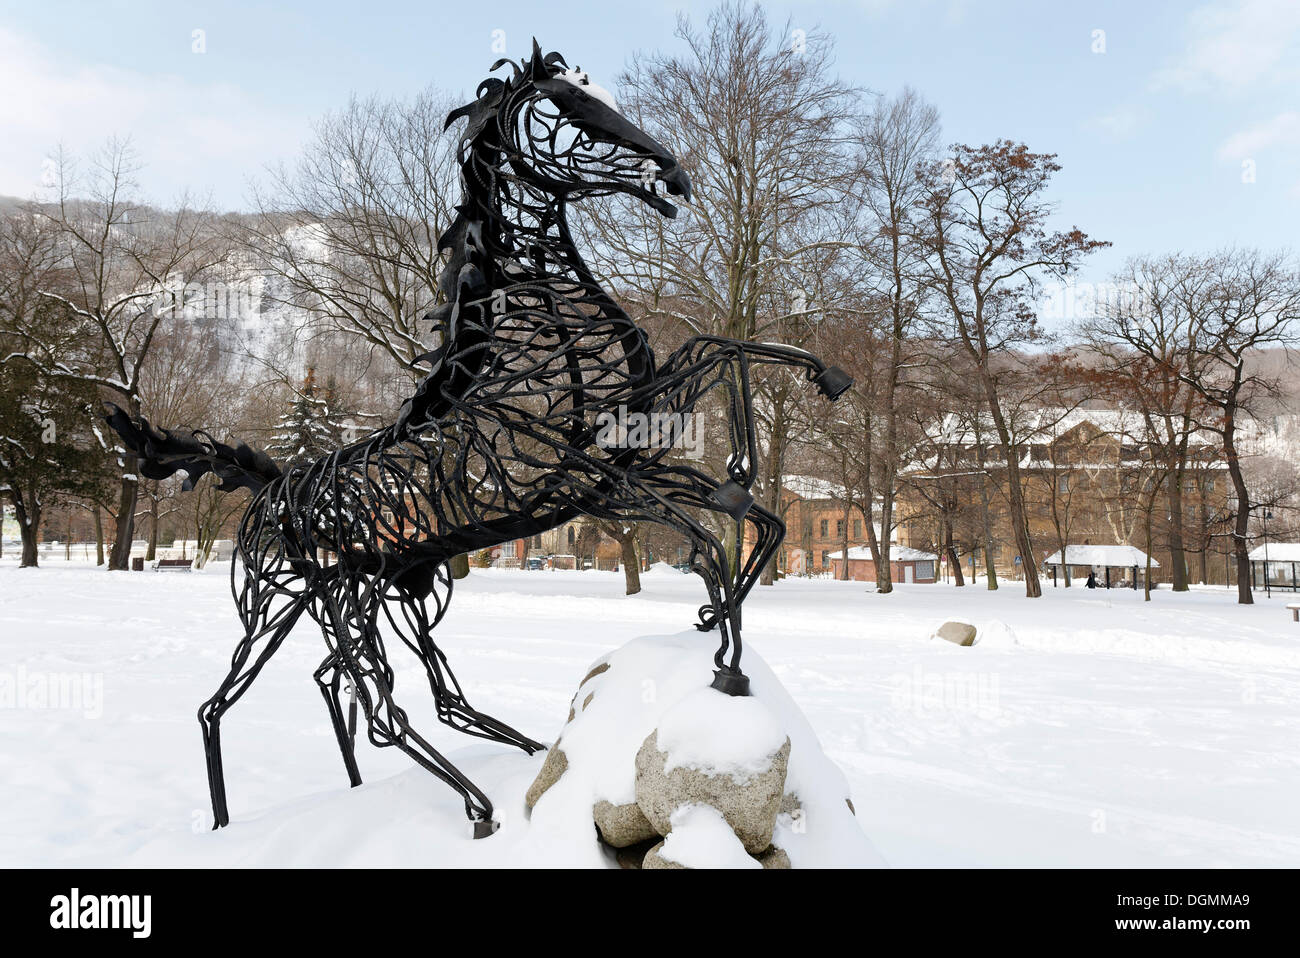 Wotan's eight-legged horse Sleipnir, figure on the Mythenweg Germanic myth road, Thale, Harz, Saxony-Anhalt - Stock Image